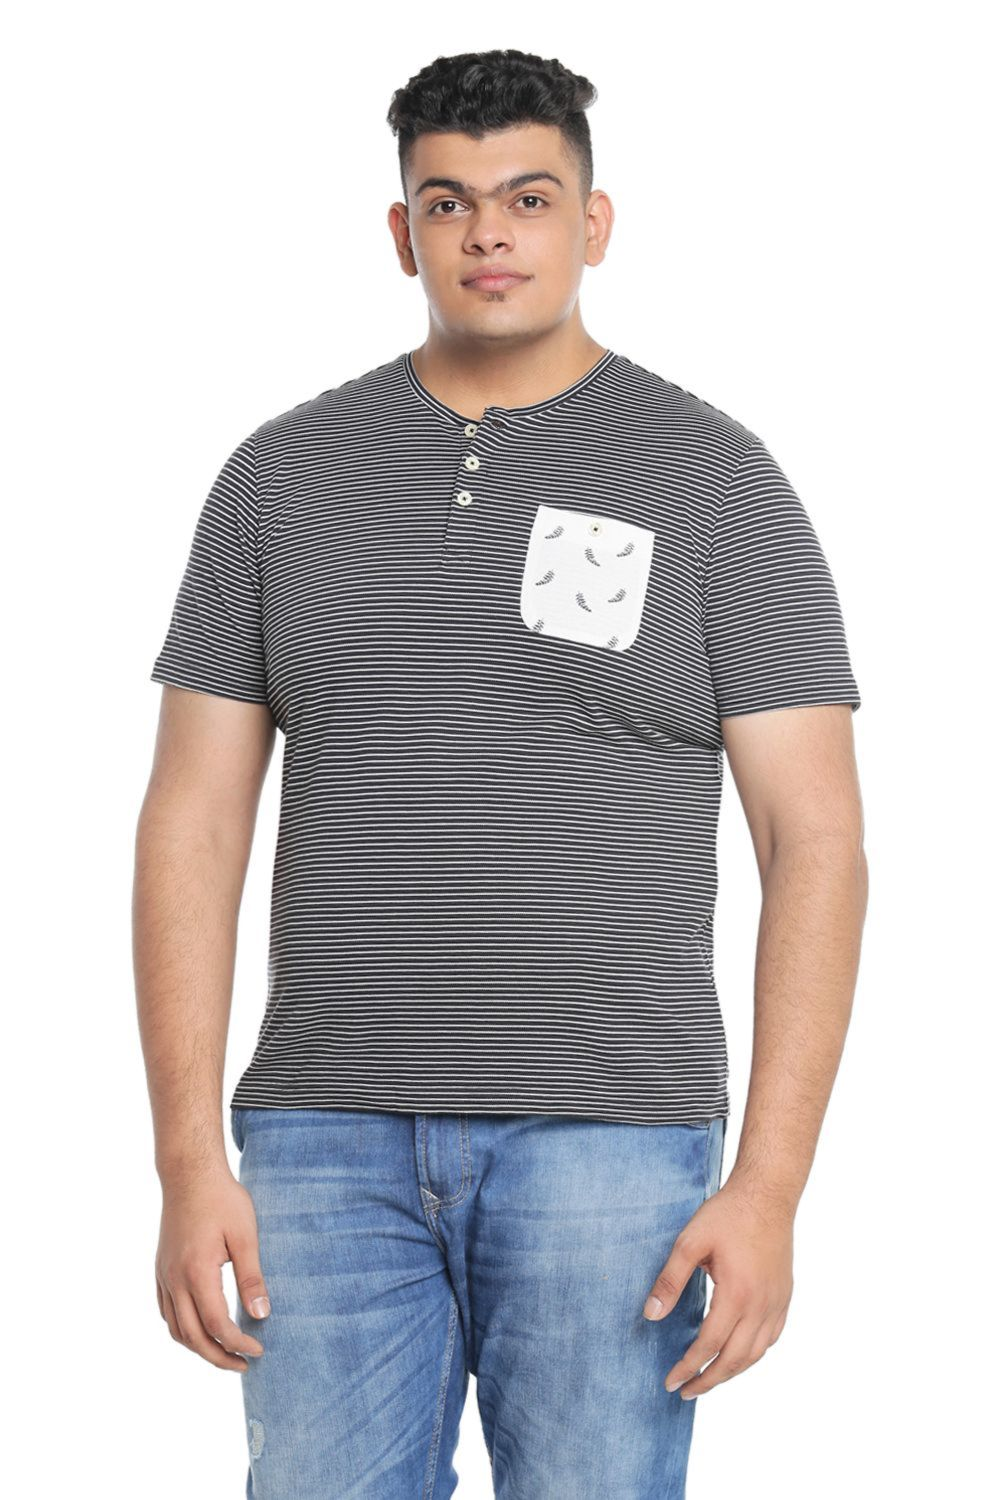 Plus Size Men Clothing Store Online In India Pantaloons